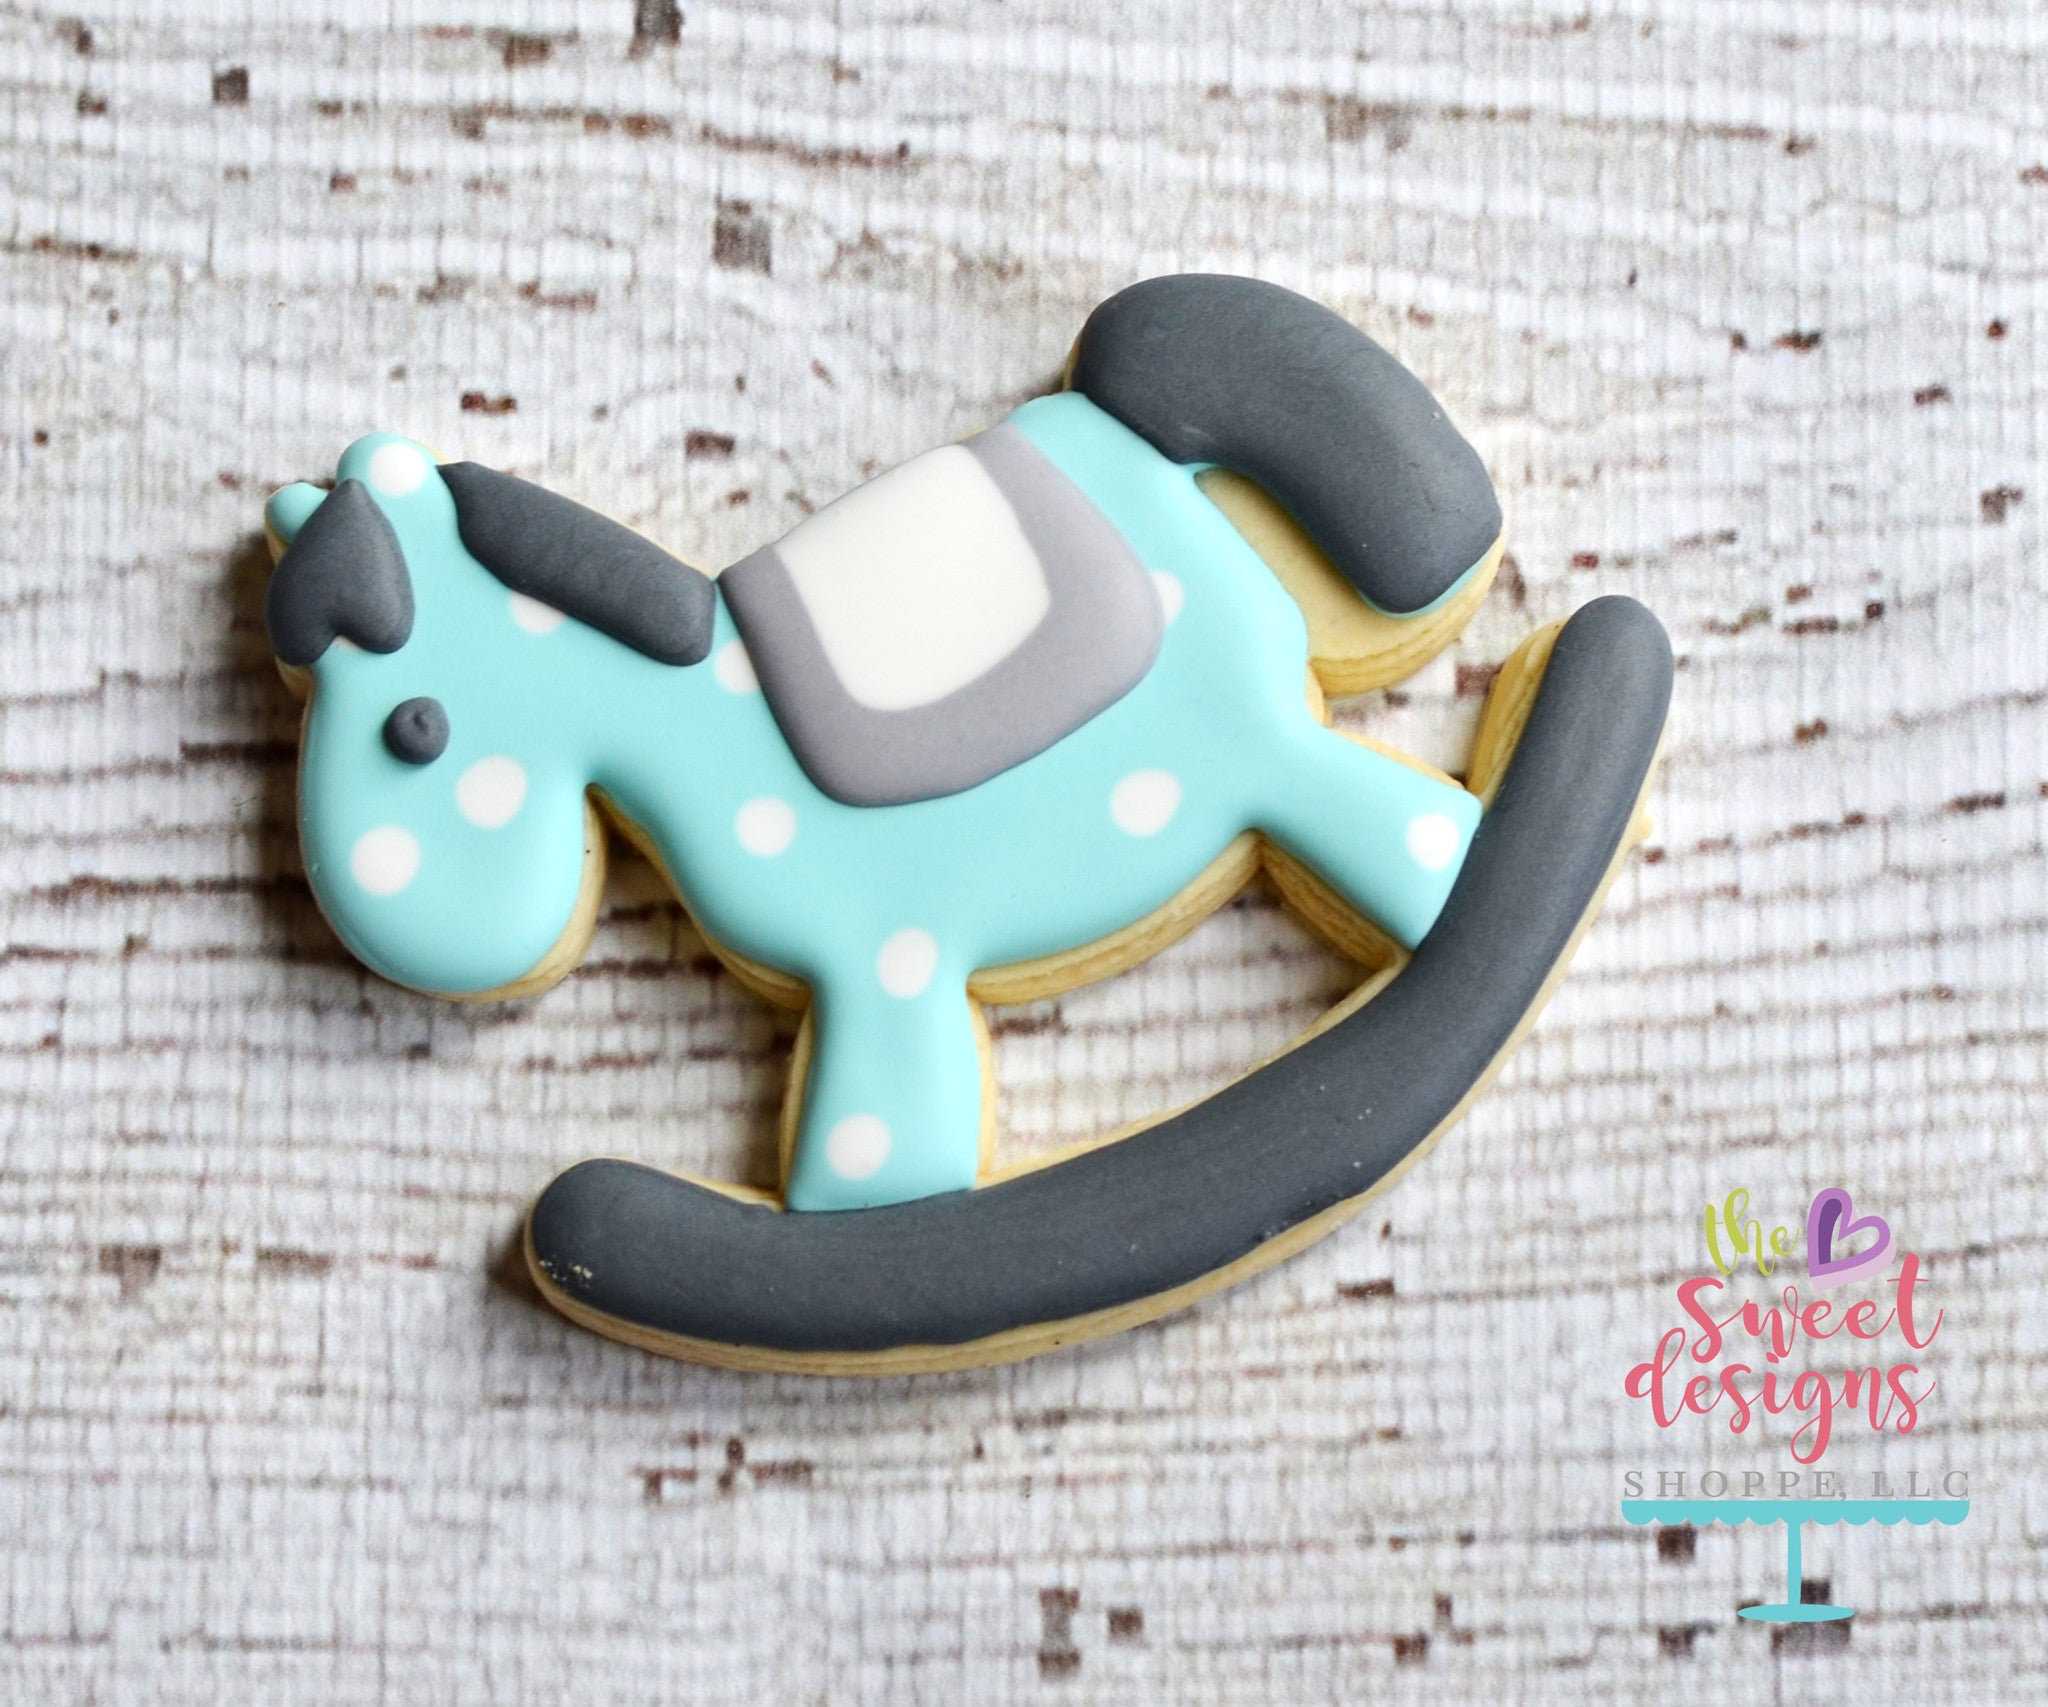 Rocking Horse Cutter The Sweet Designs Shoppe